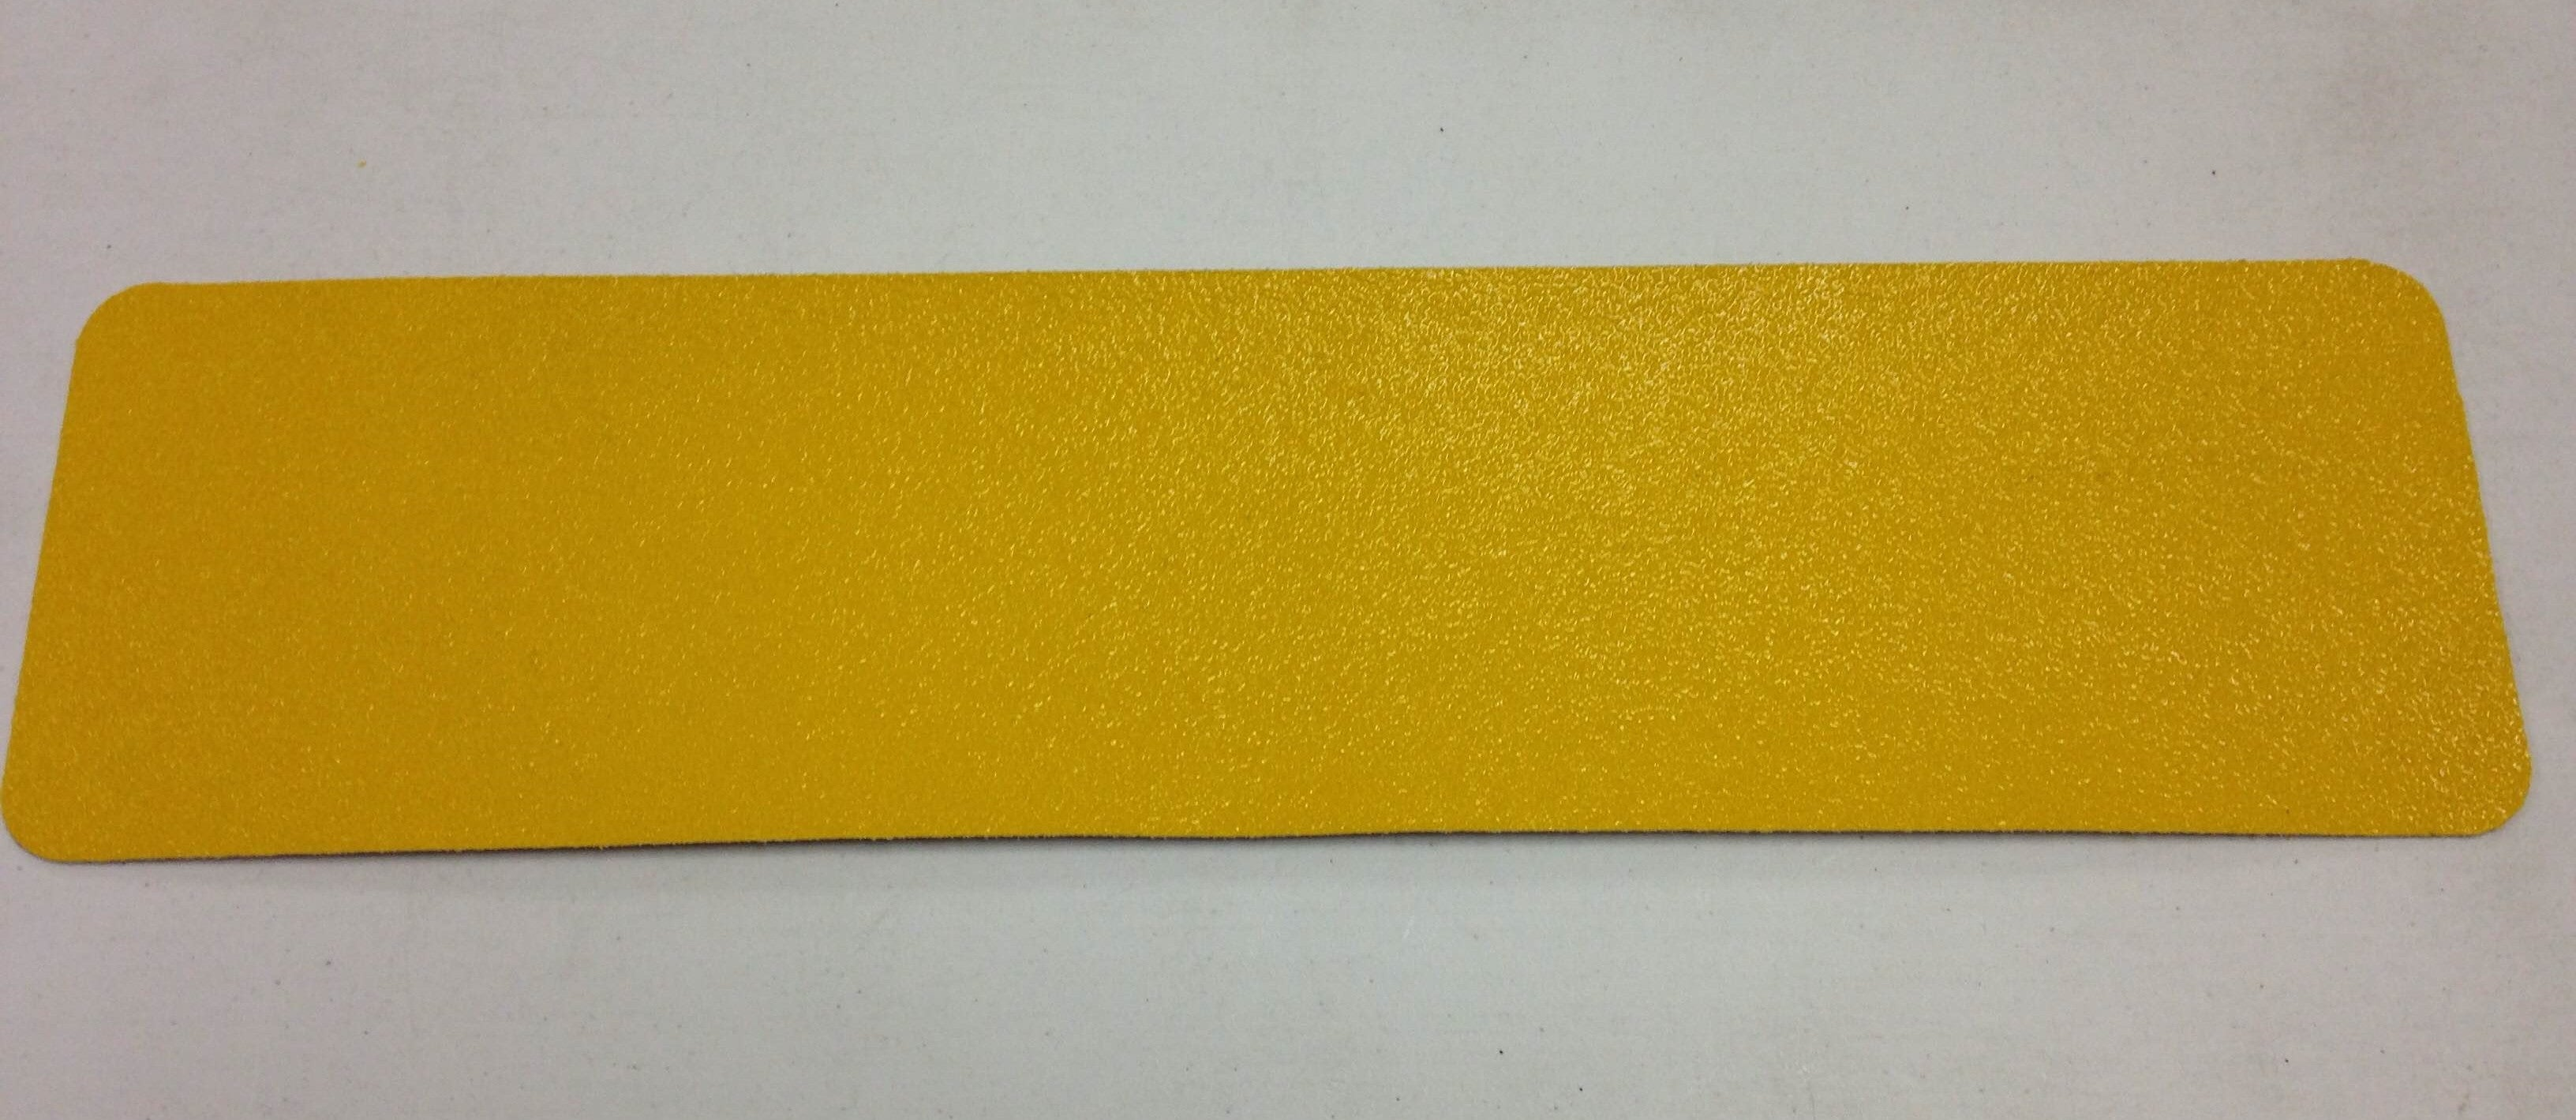 "6"" X 24"" Tread Pkg. of 12 YELLOW Extreme Tape Medium Grit - 10 Day Processing"